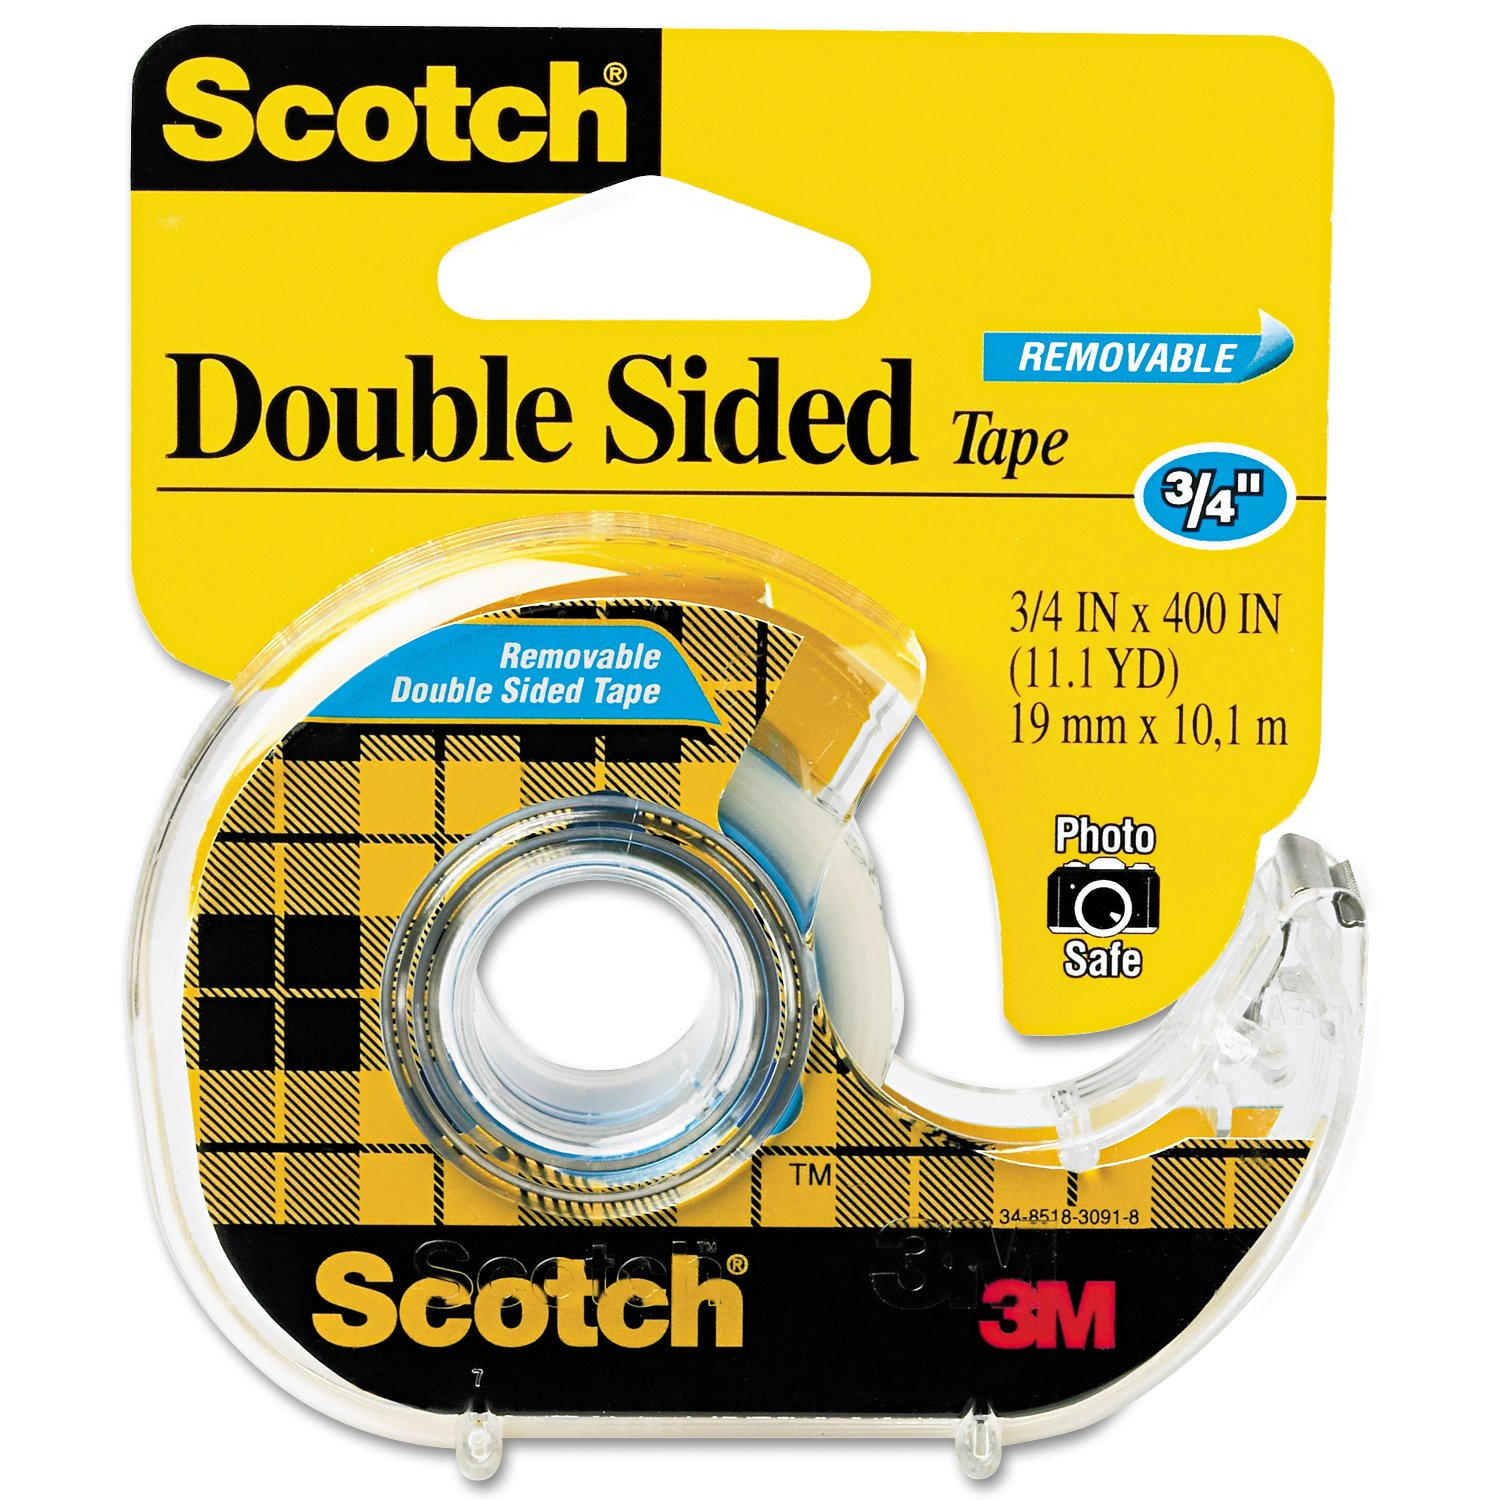 Scotch Brand Double Sided Removable Tape, No Liner, Strong, Photo-Safe, Engineered for Posting, 3/4 x 400 Inches, 1 Dispensered Roll (667)